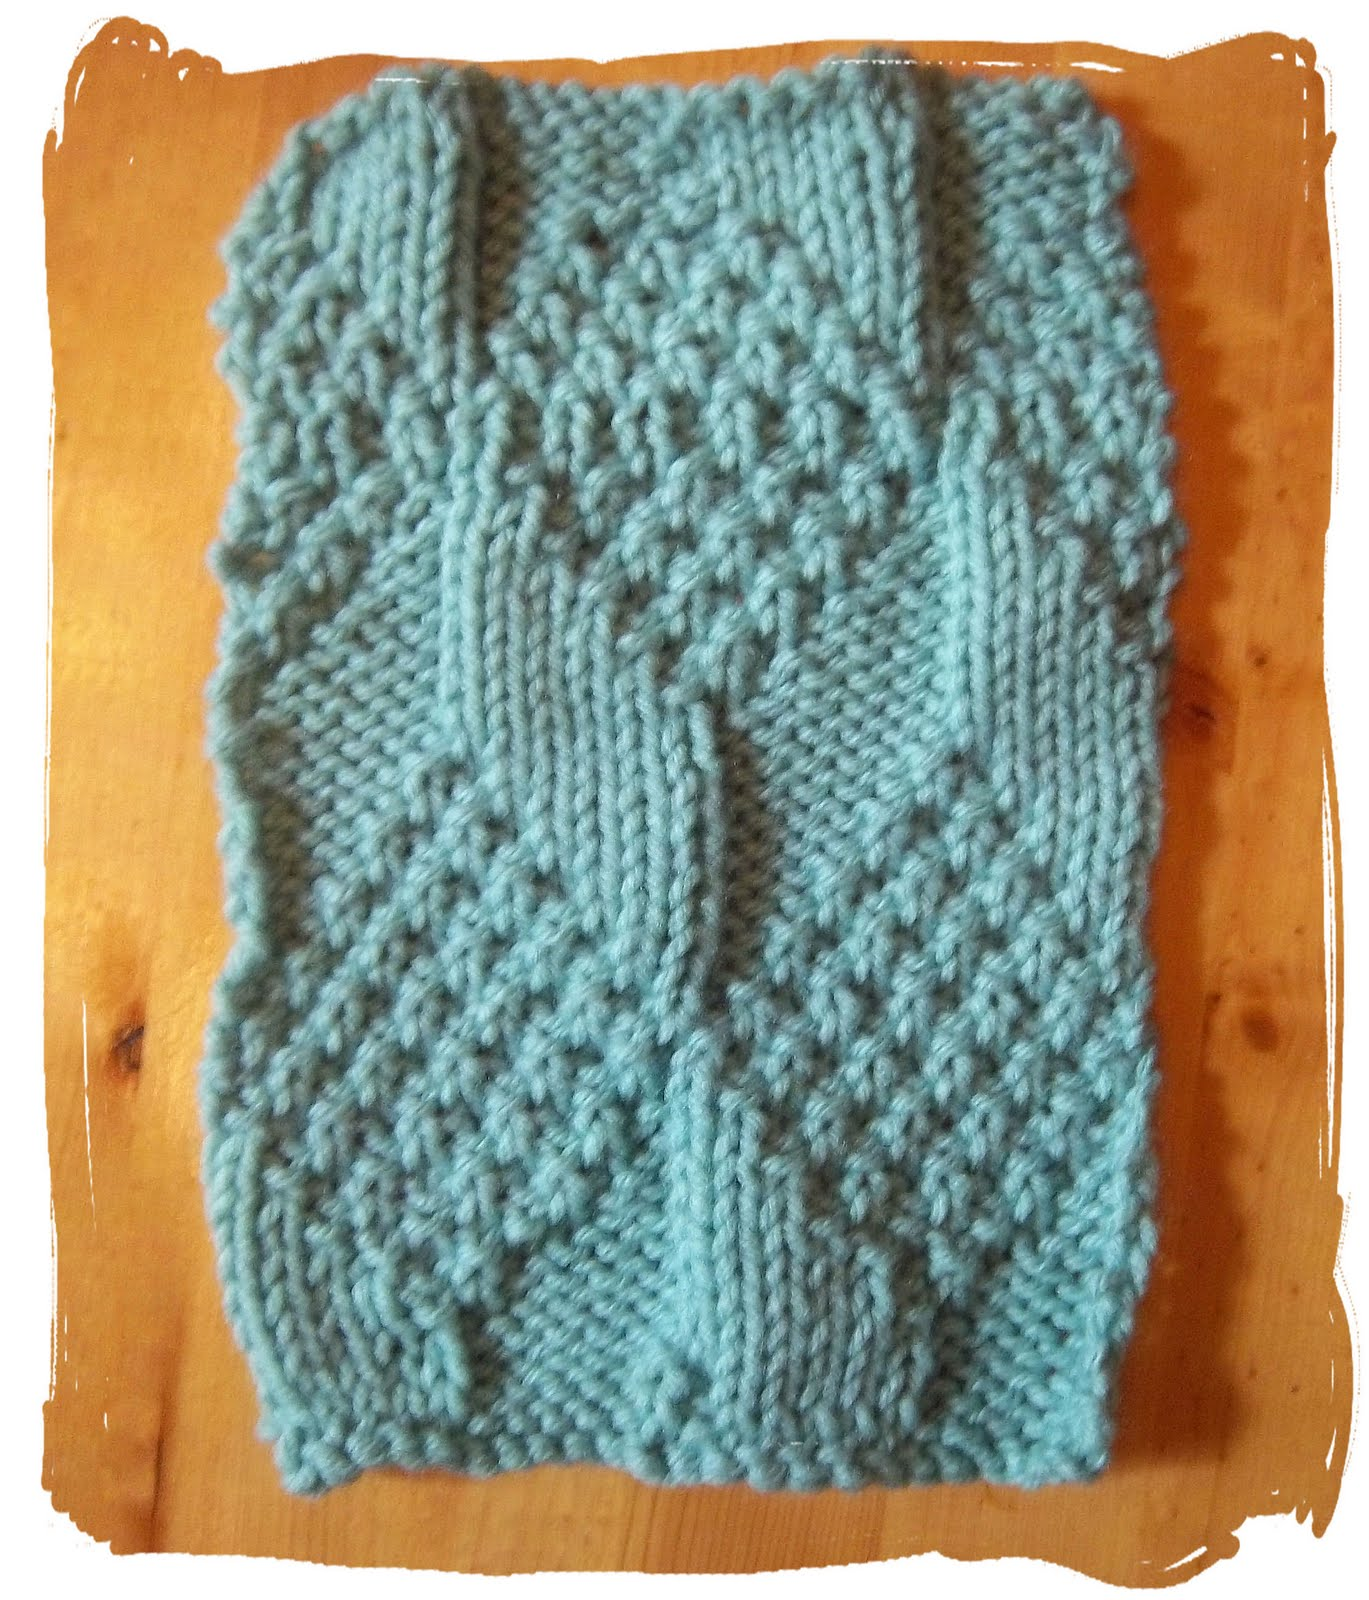 Knitting Stitches Gallery : knit patterns-Knitting Gallery